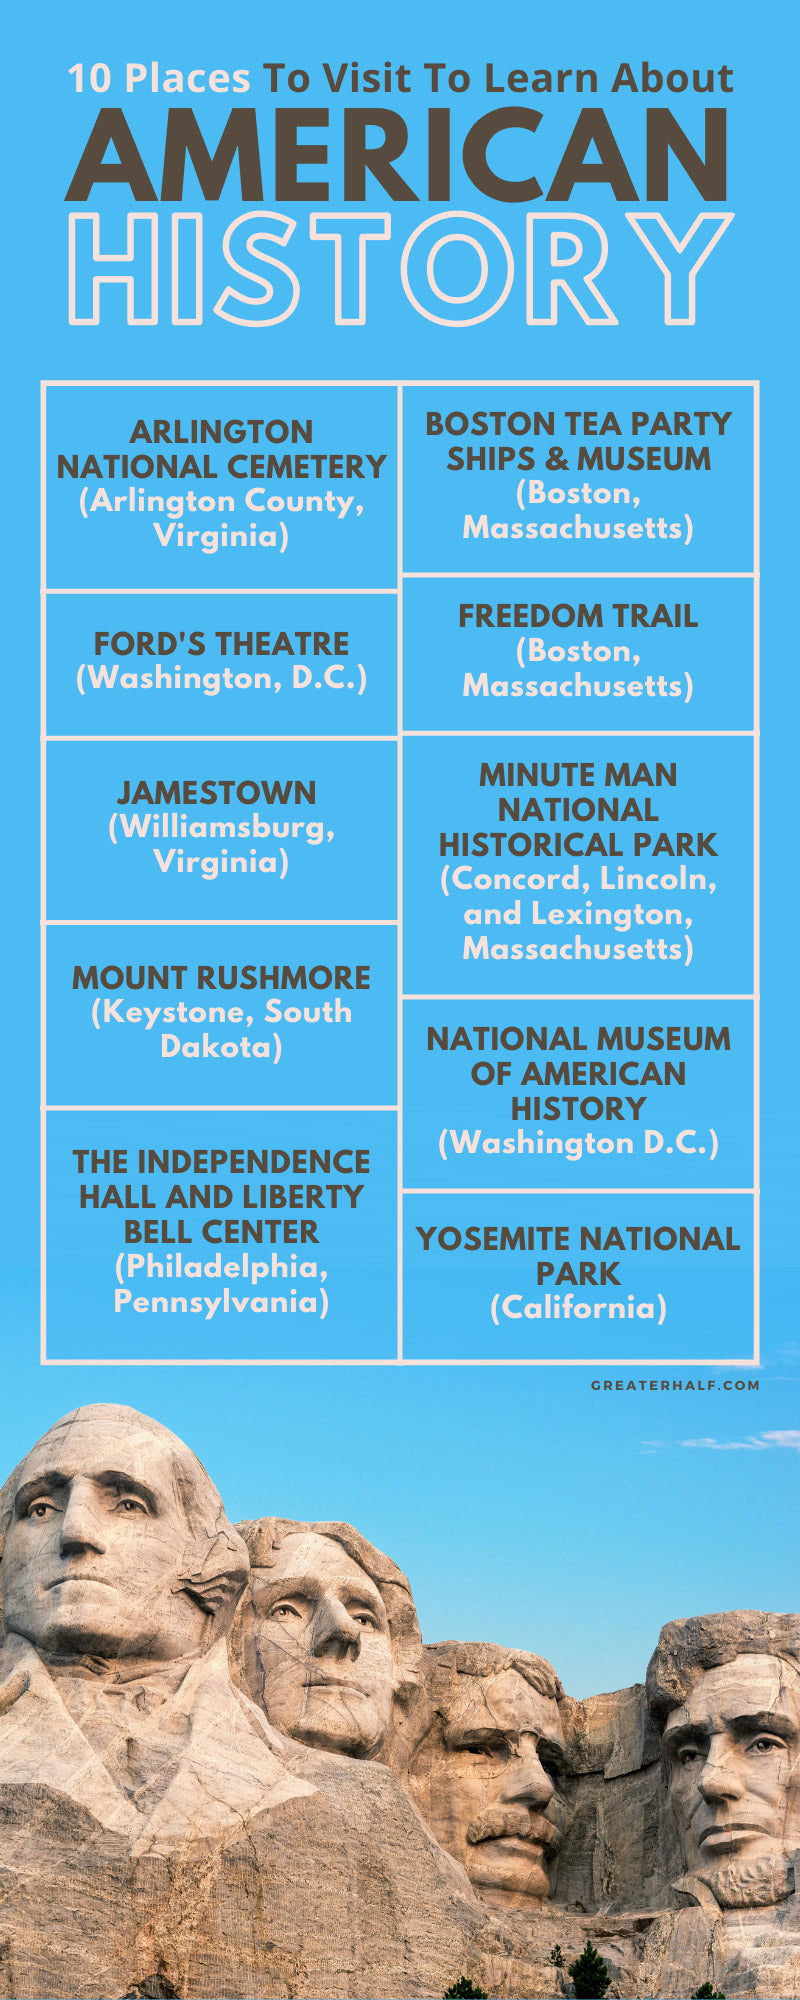 10 Places To Visit To Learn About American History